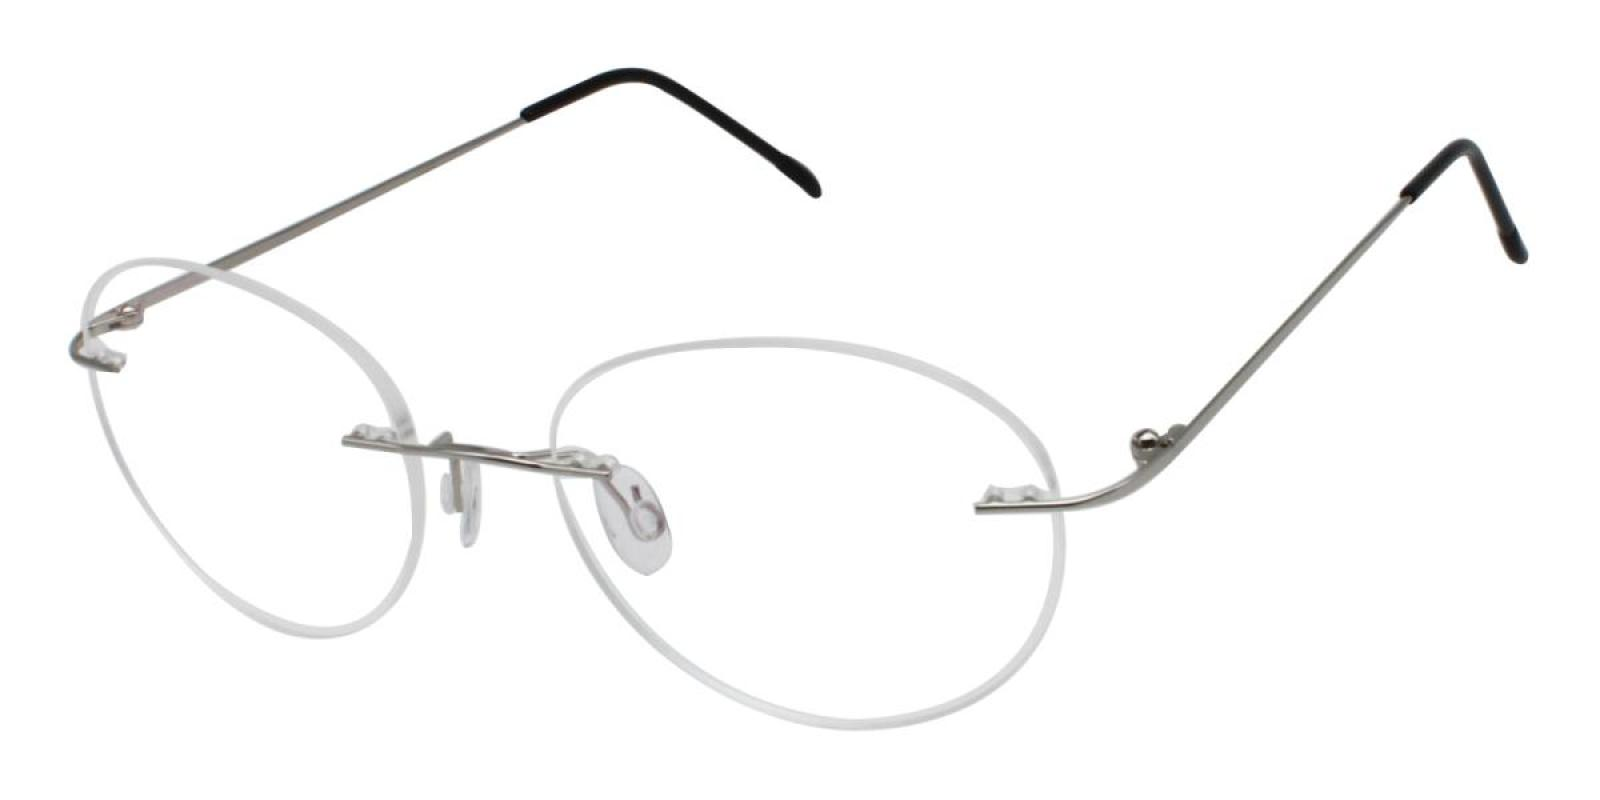 Ditto-Silver-Varieties-Metal-Eyeglasses-additional1